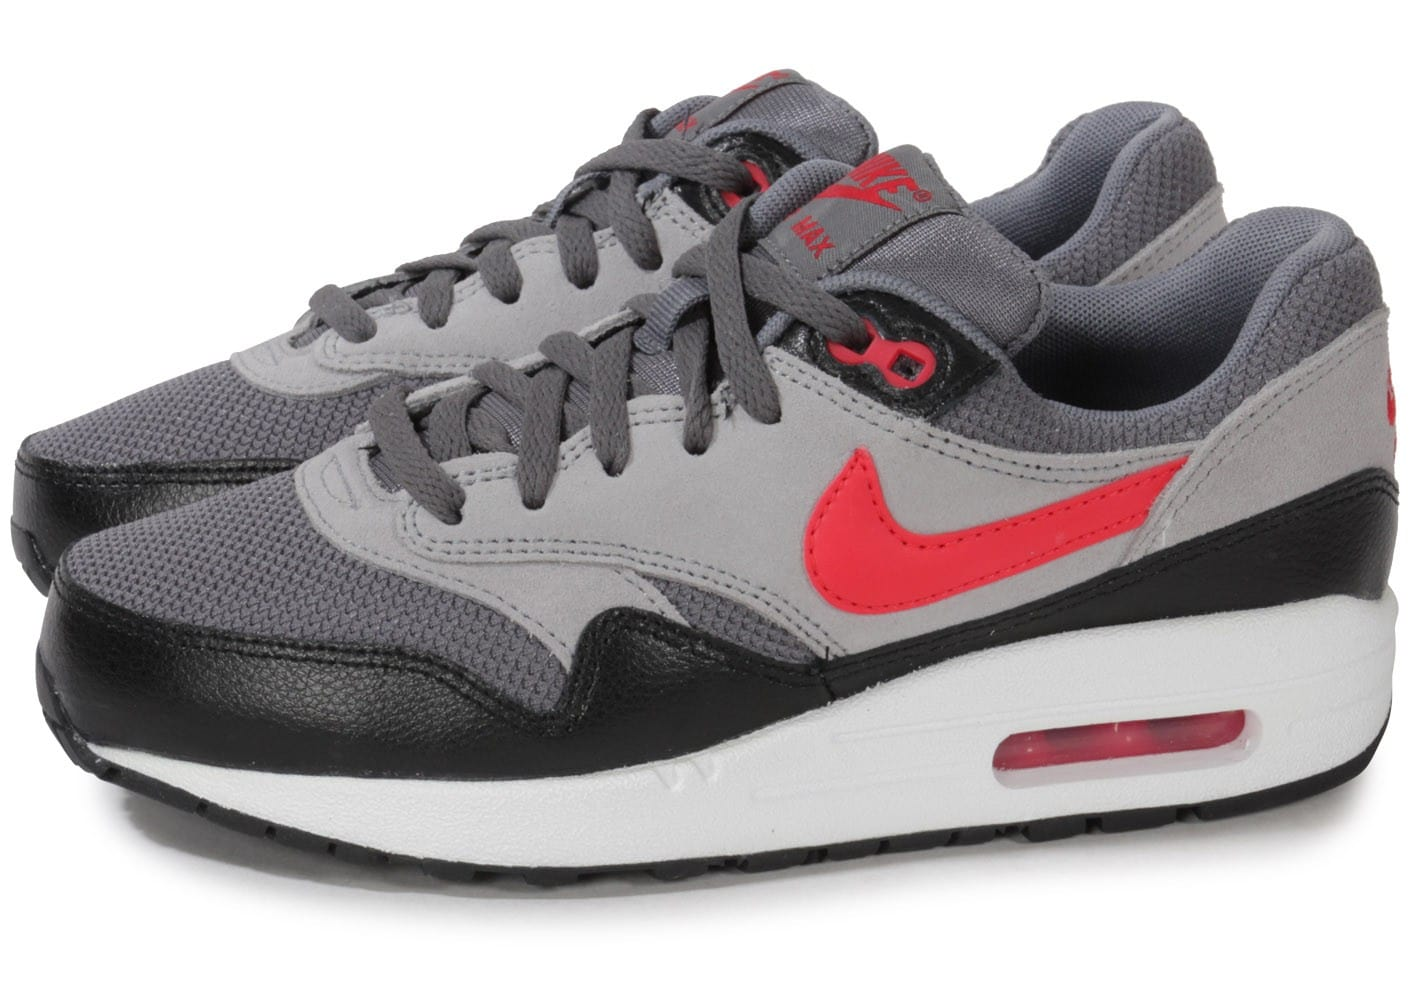 nike air max 1 junior grise team red chaussures chaussures chausport. Black Bedroom Furniture Sets. Home Design Ideas